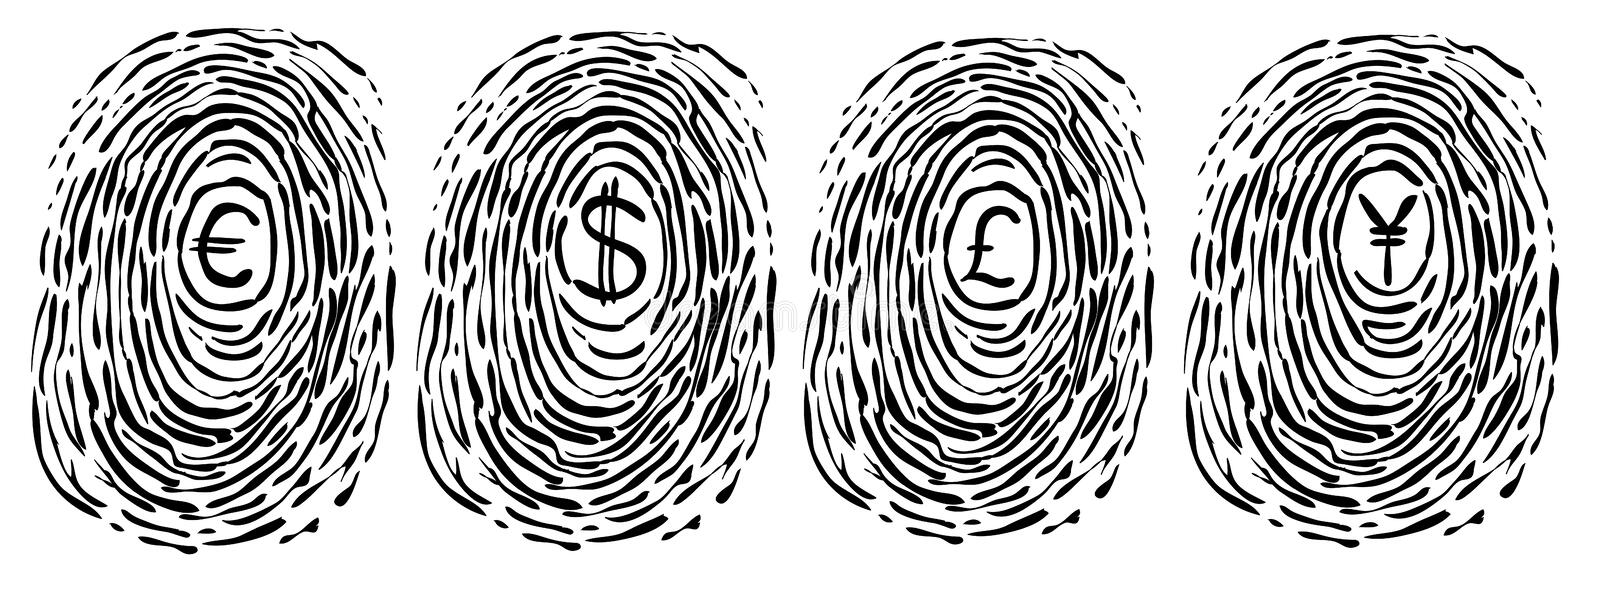 Finger print with currency symbols vector illustration